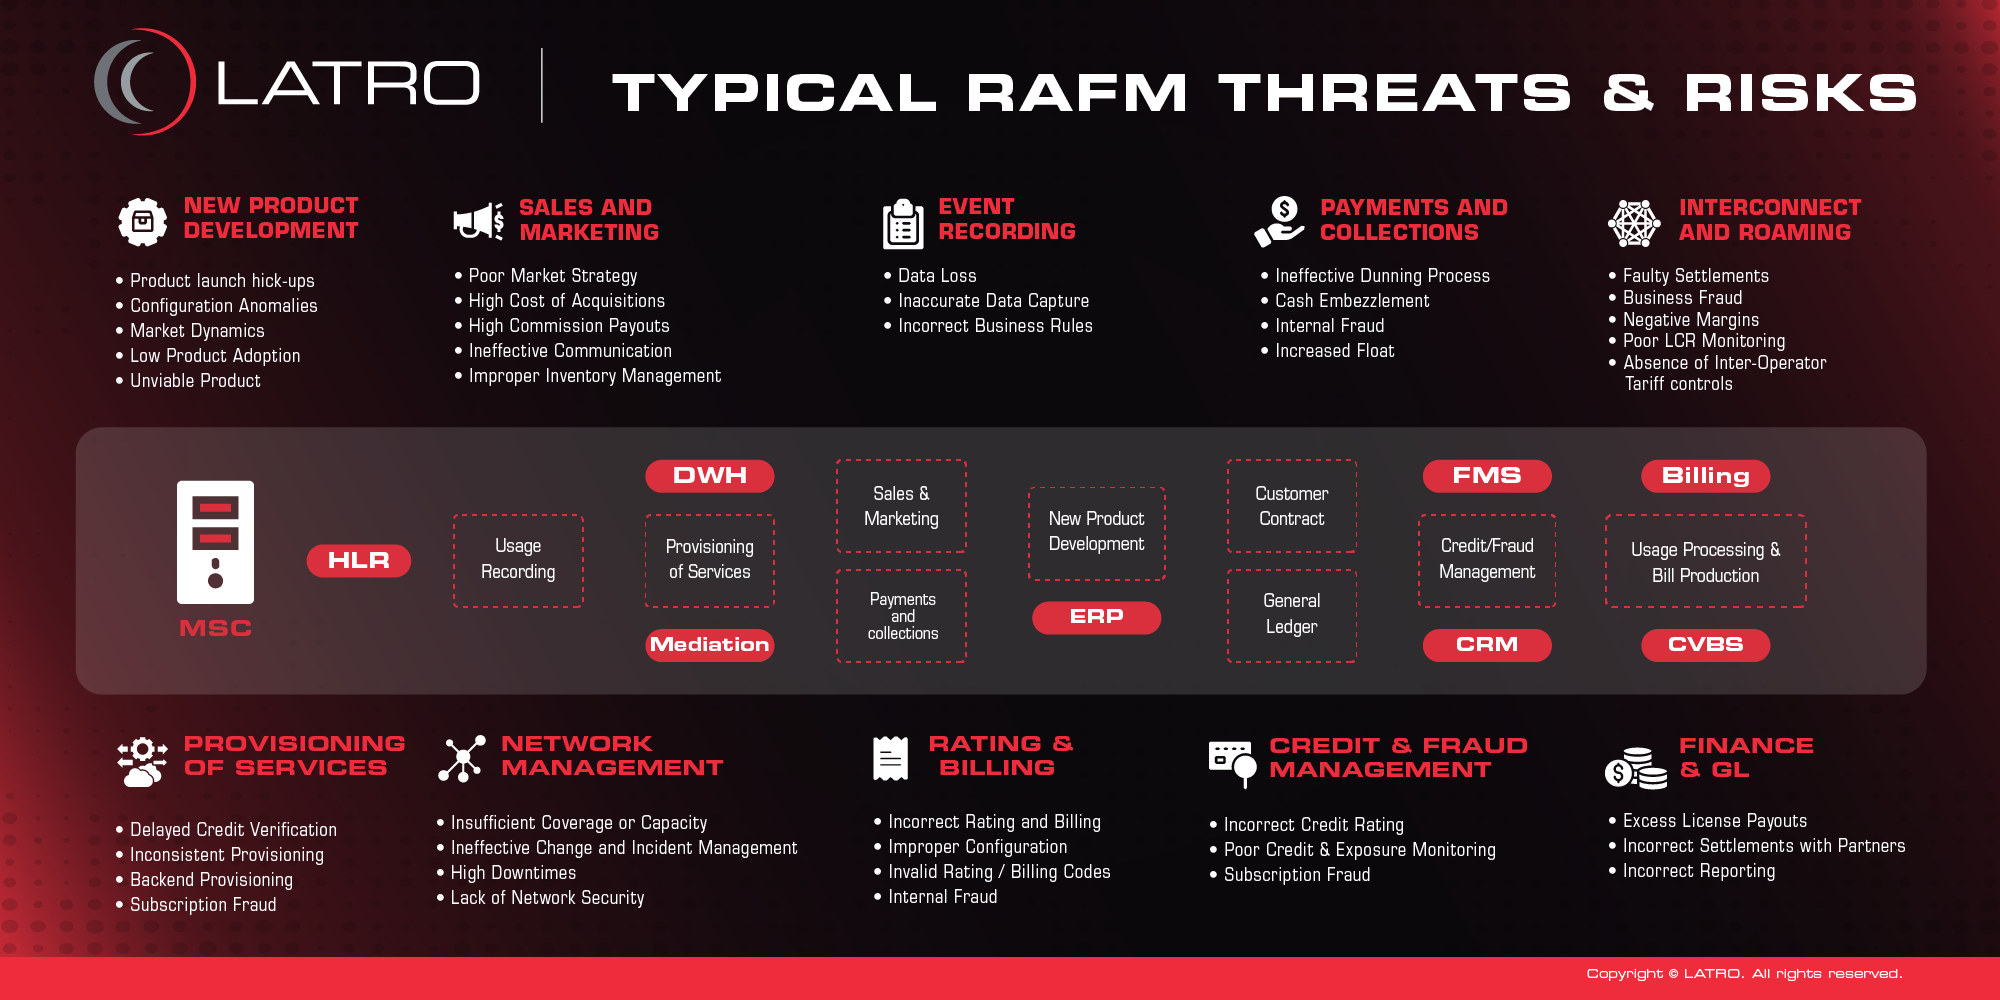 Threats and Risks to RAFM - Revenue Assurance